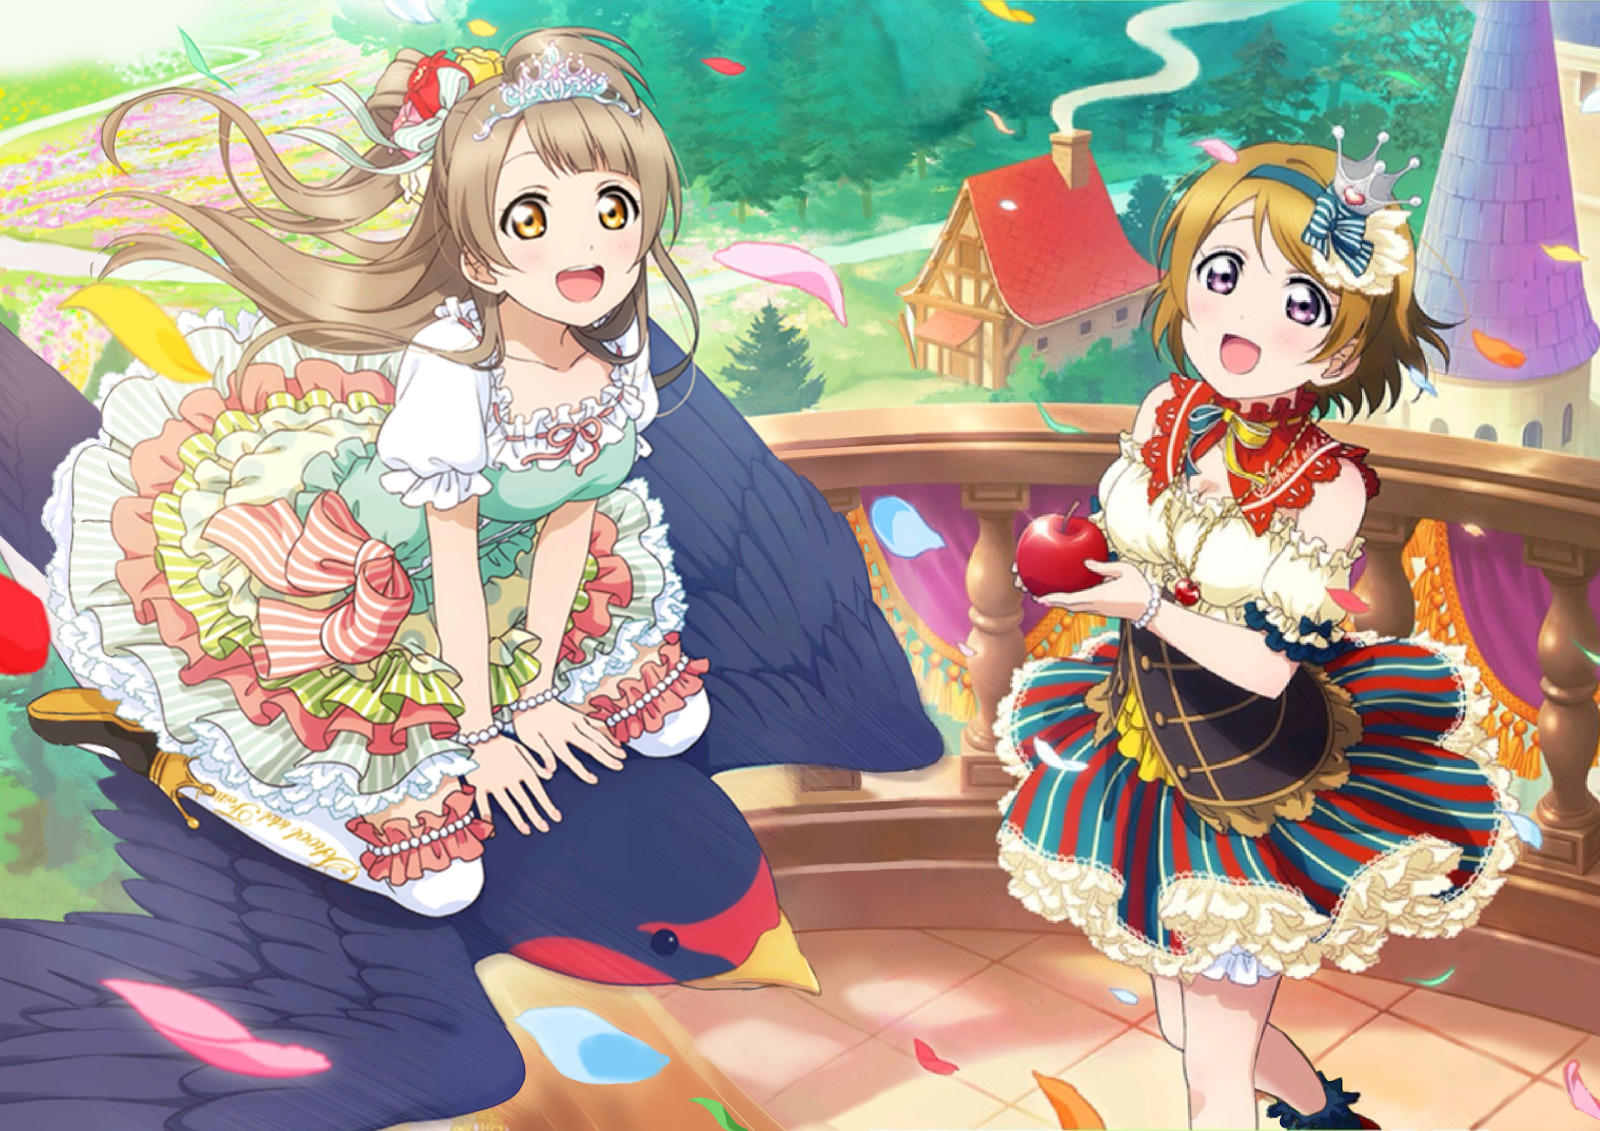 Love Live Wallpaper Hd New: Love Live! Wallpaper And Background Image